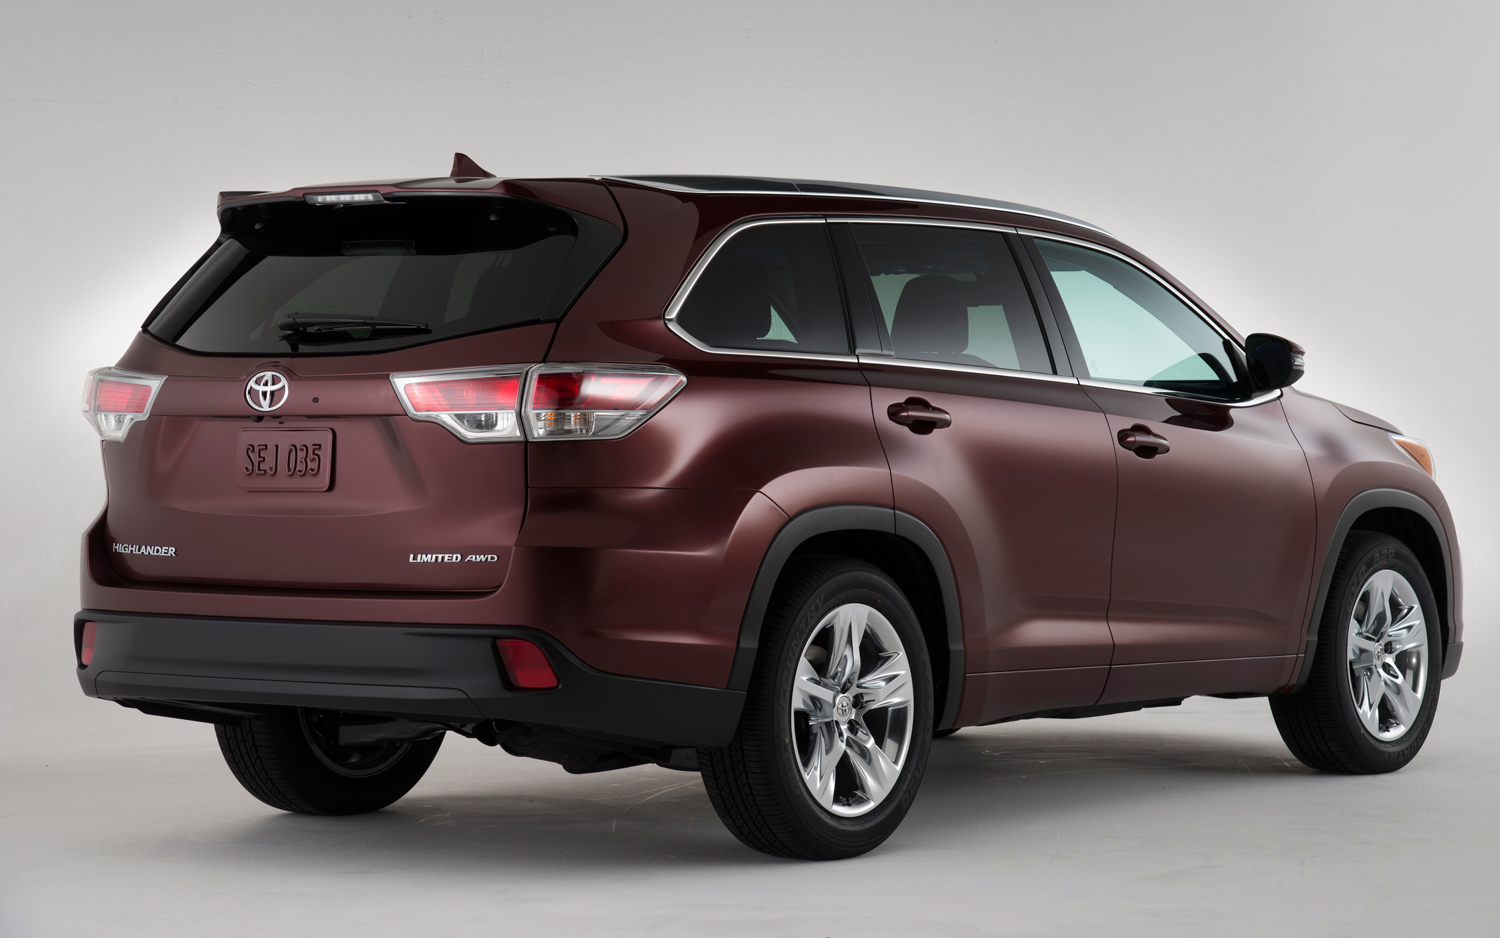 2014 toyota highlander exterior specs against pilot explorer new cars reviews. Black Bedroom Furniture Sets. Home Design Ideas